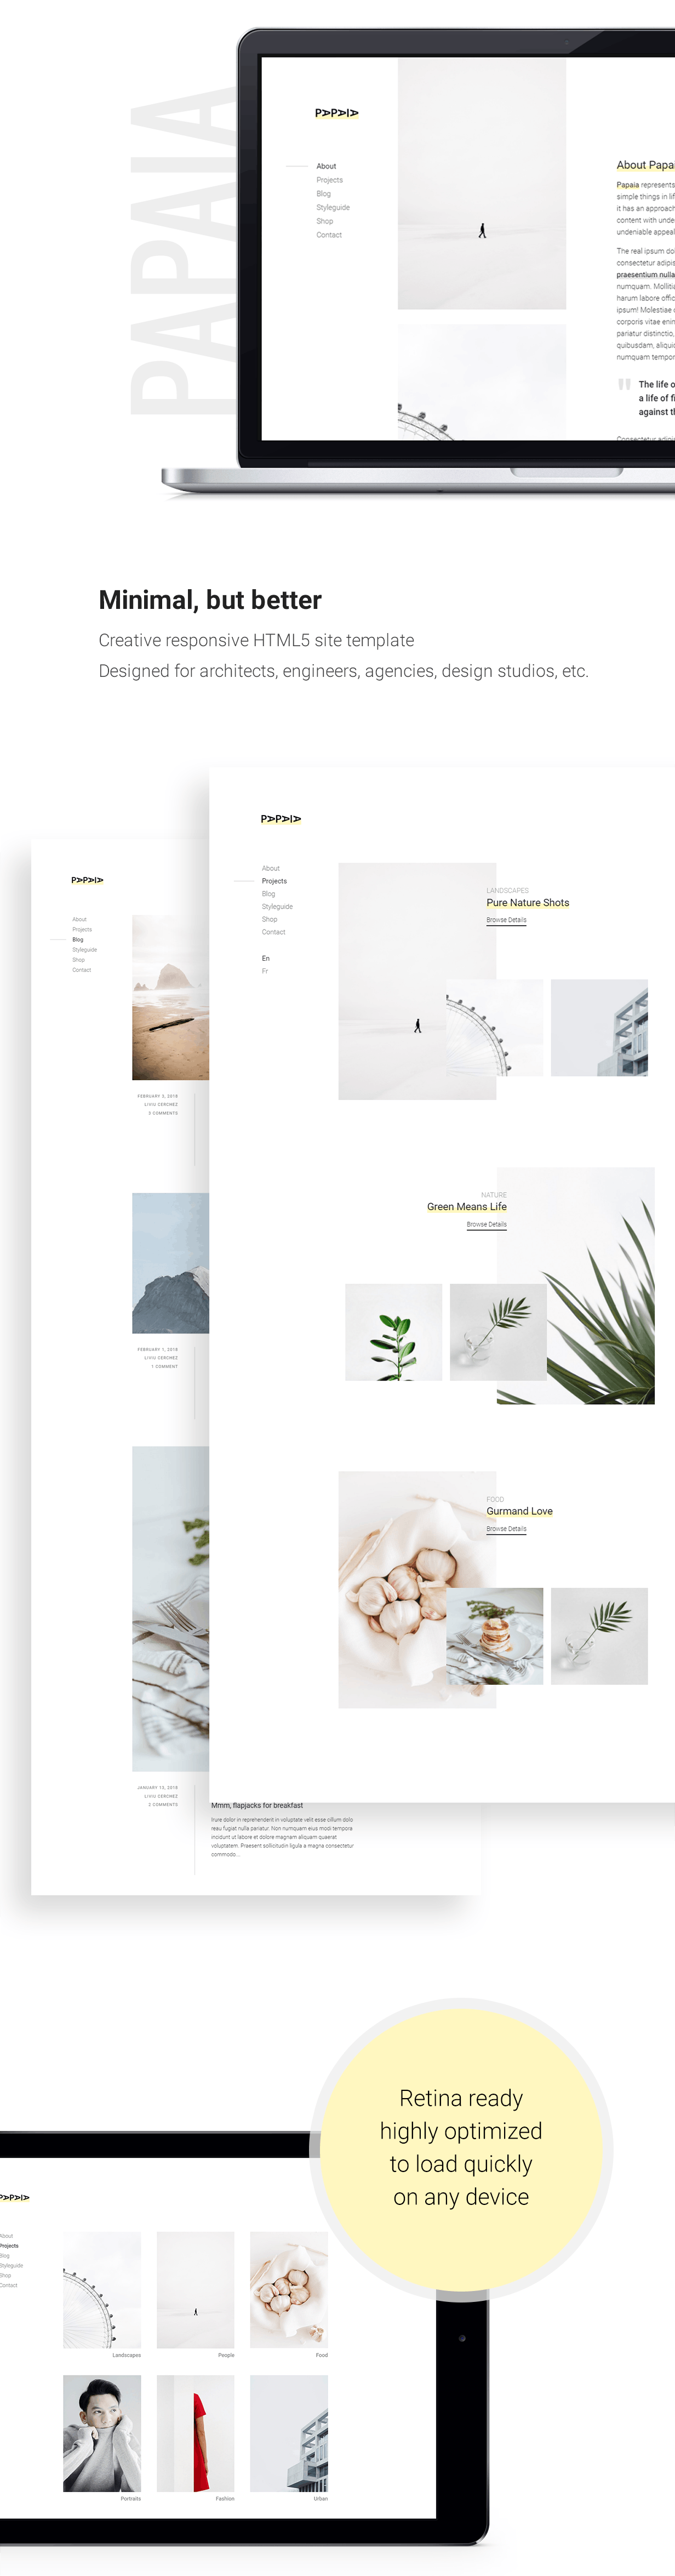 Papaia is a modern HTML5 template designed to load quickly and it is ideal for architects, agencies, design studios, startups, freelancers, photographers and any other creative business.